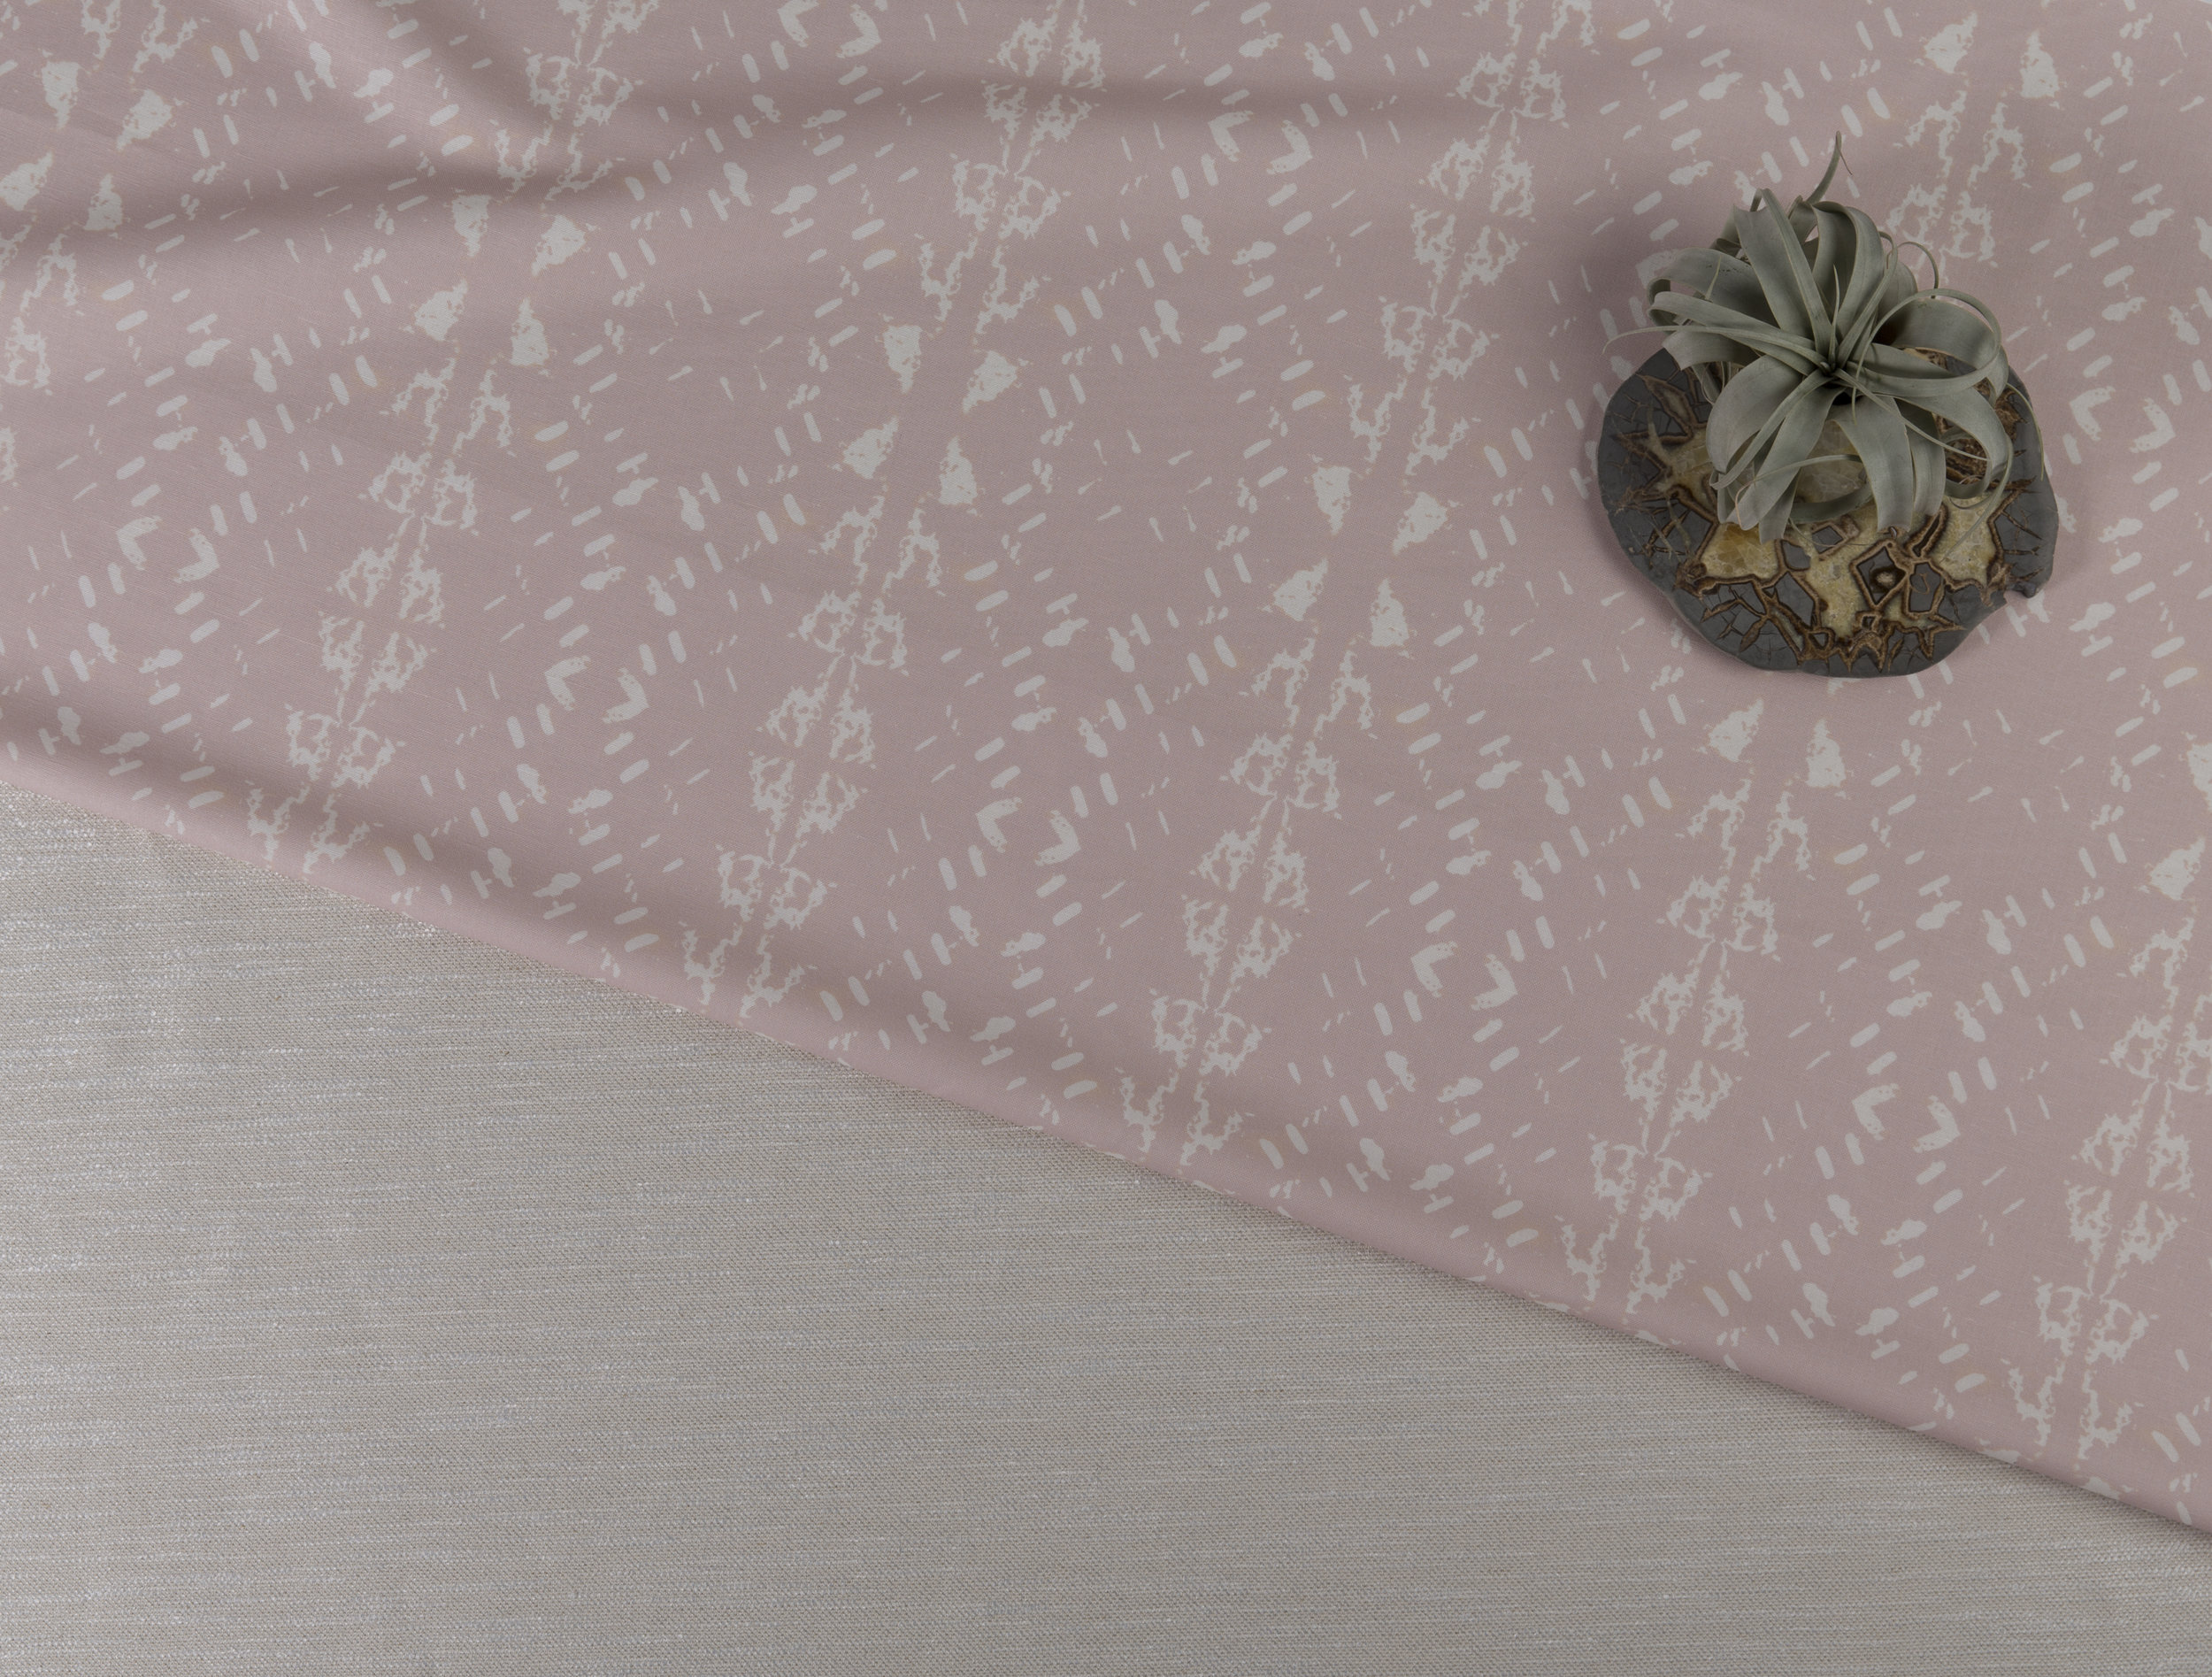 Native Embers Bleached Rose & Pearl Lustrous Woven Eco-blend Fabrics